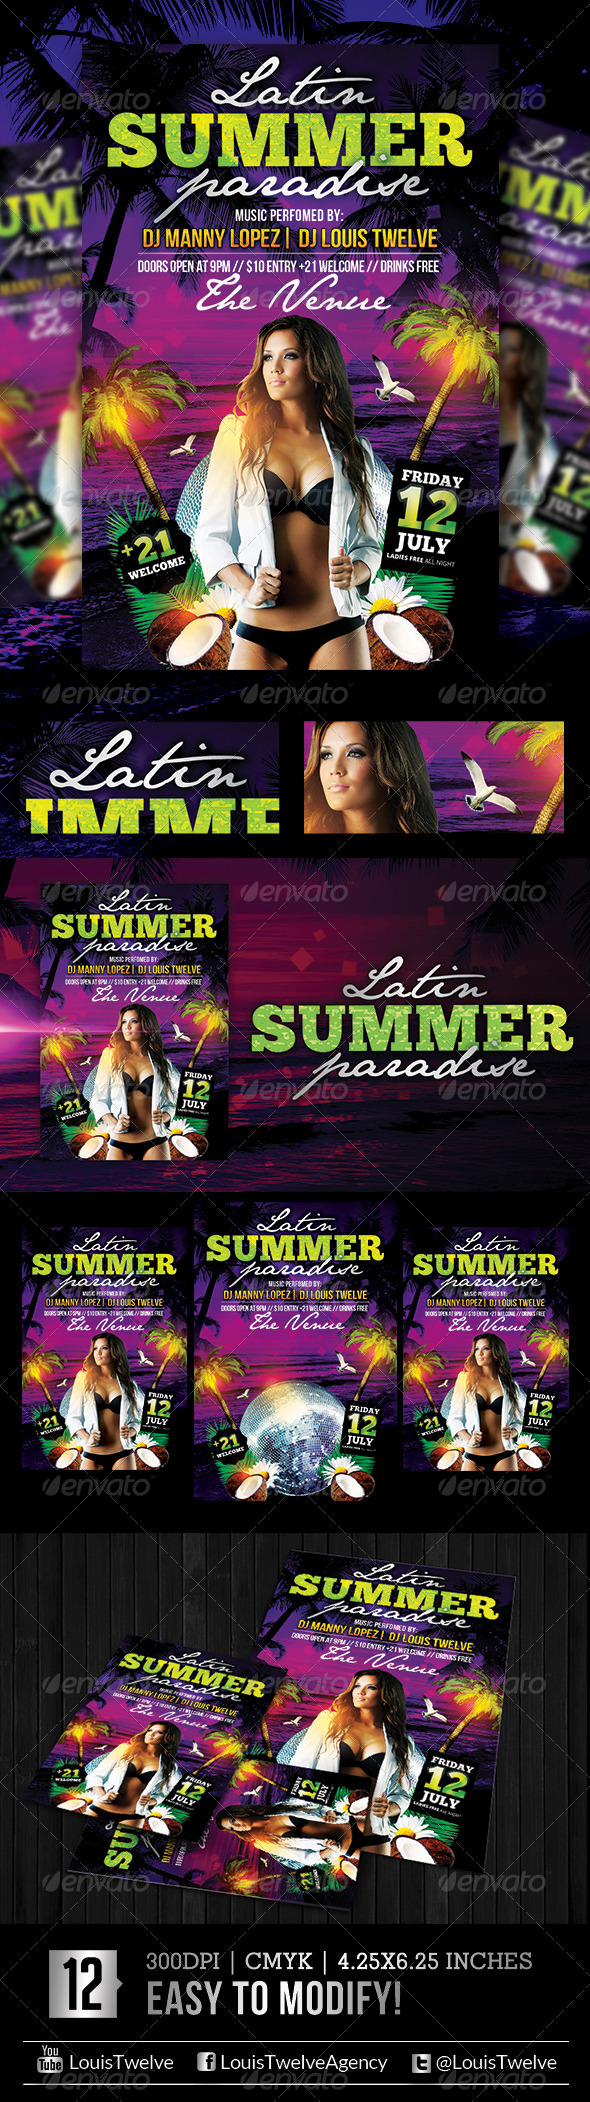 The Summer Paradise | Flyer Template